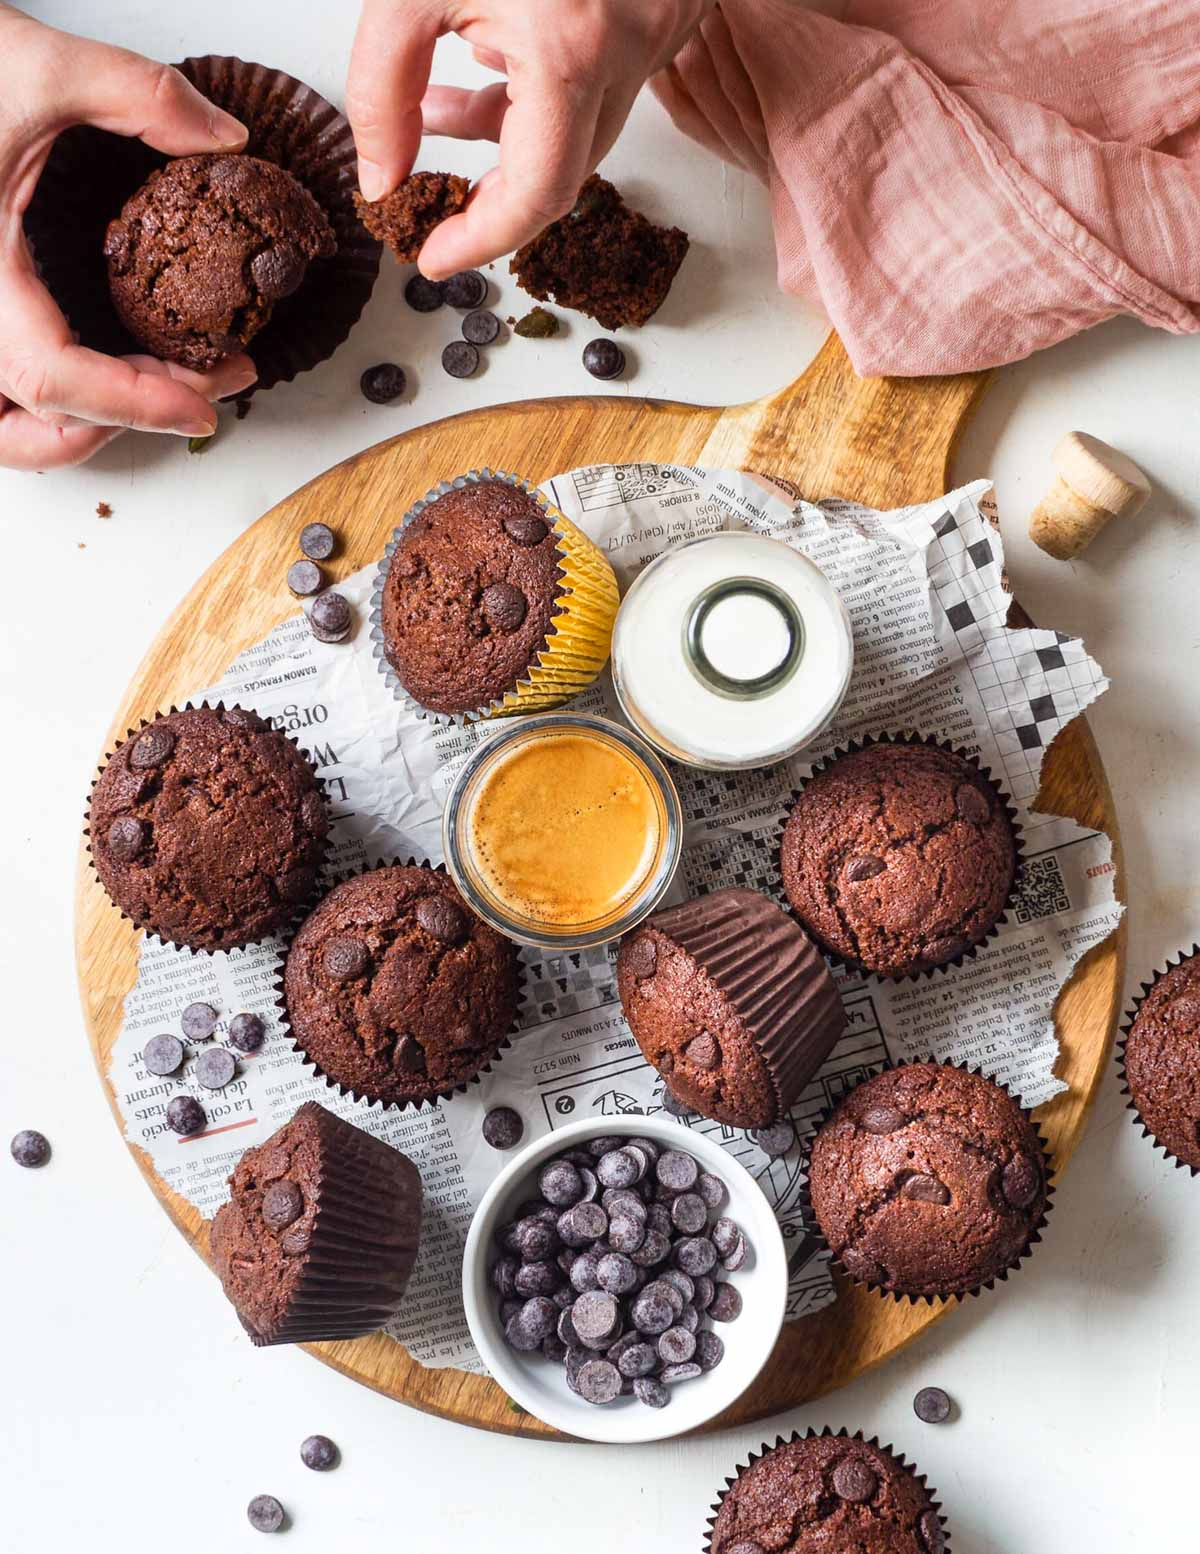 muffins on a wooden board with hands breaking one open